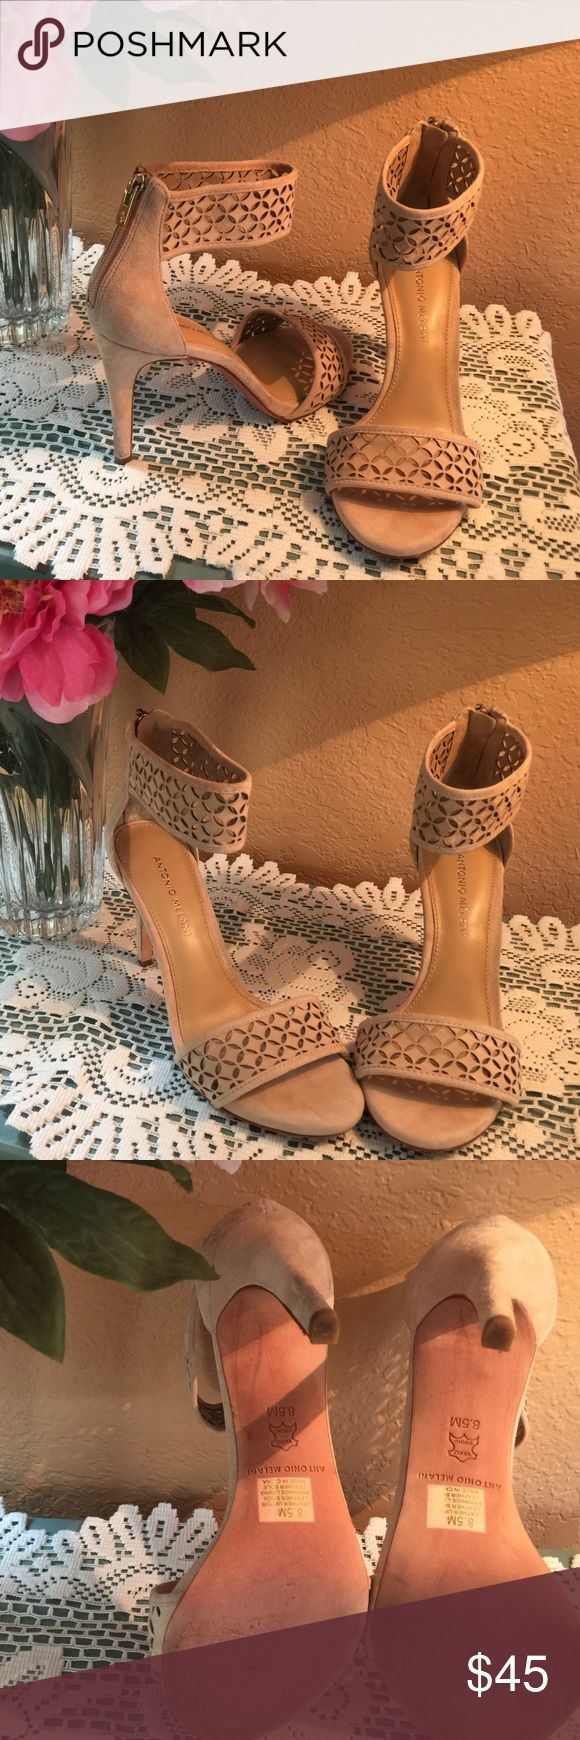 Antonio Melani dress shoe SZ 8.5 These shoes are very classy and would go well with a classy short dress or skirt. This is definitely a party shoe! ANTONIO MELANI Shoes Heels